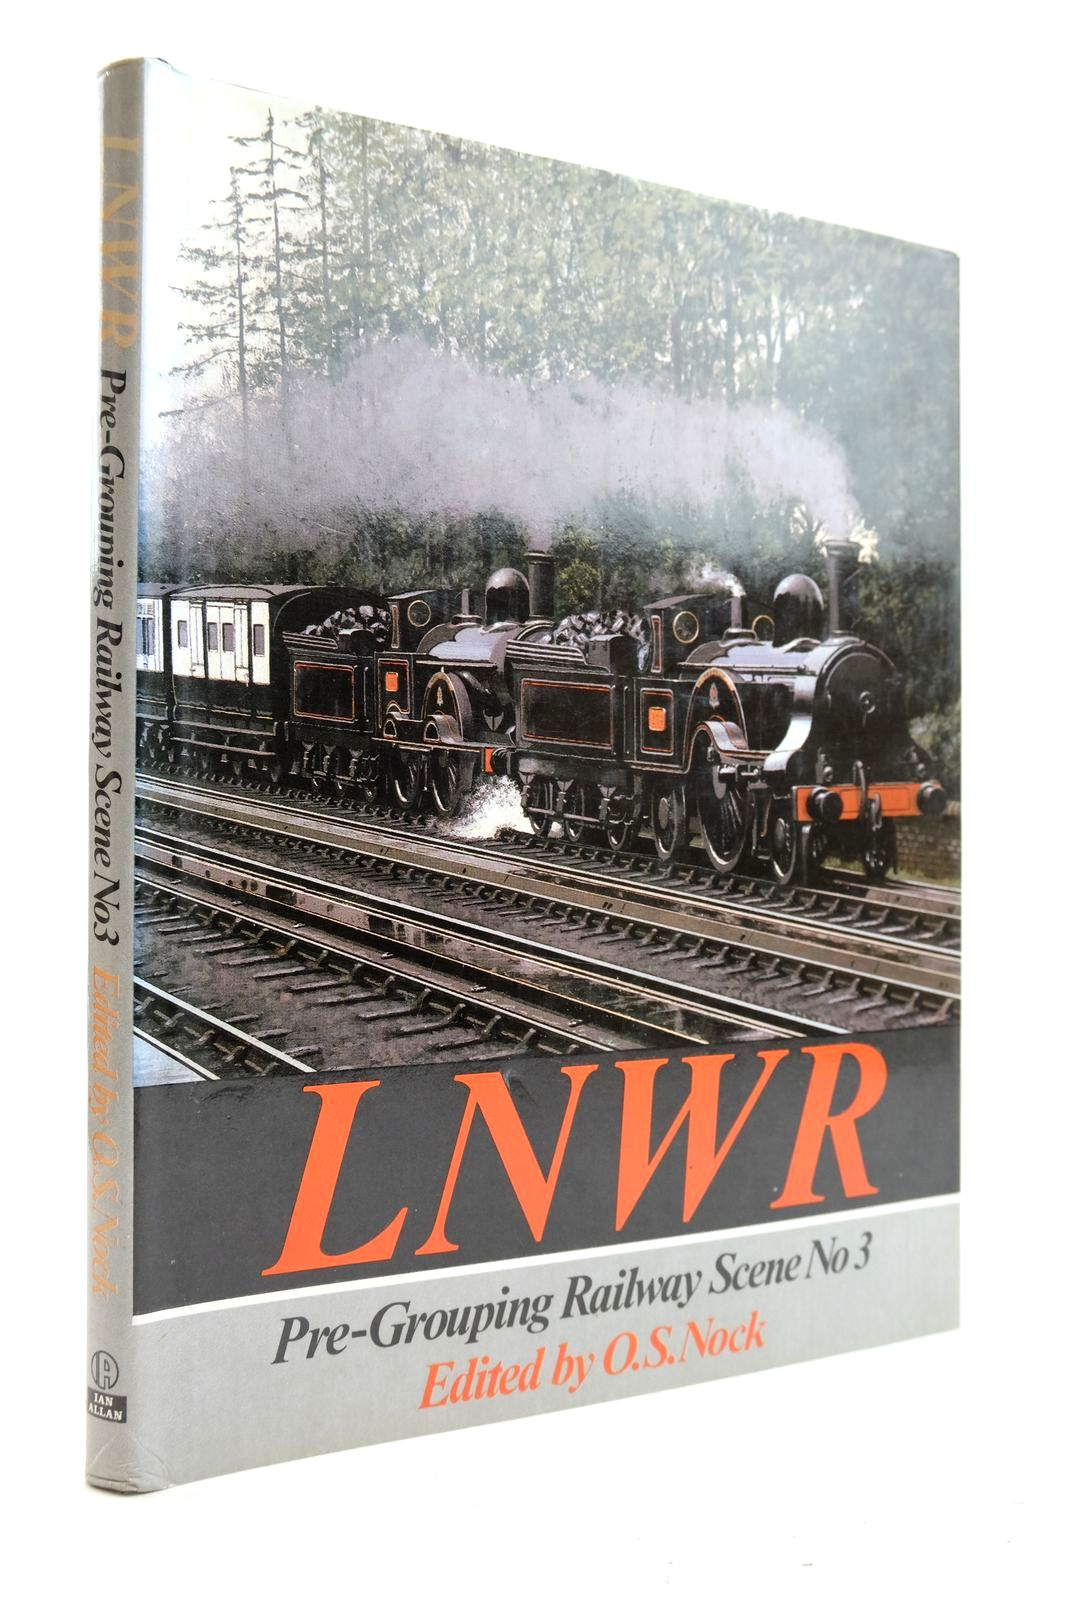 Photo of LNWR PRE-GROUPING RAILWAY SCENE No. 3 written by Nock, O.S. published by Ian Allan Ltd. (STOCK CODE: 2133107)  for sale by Stella & Rose's Books